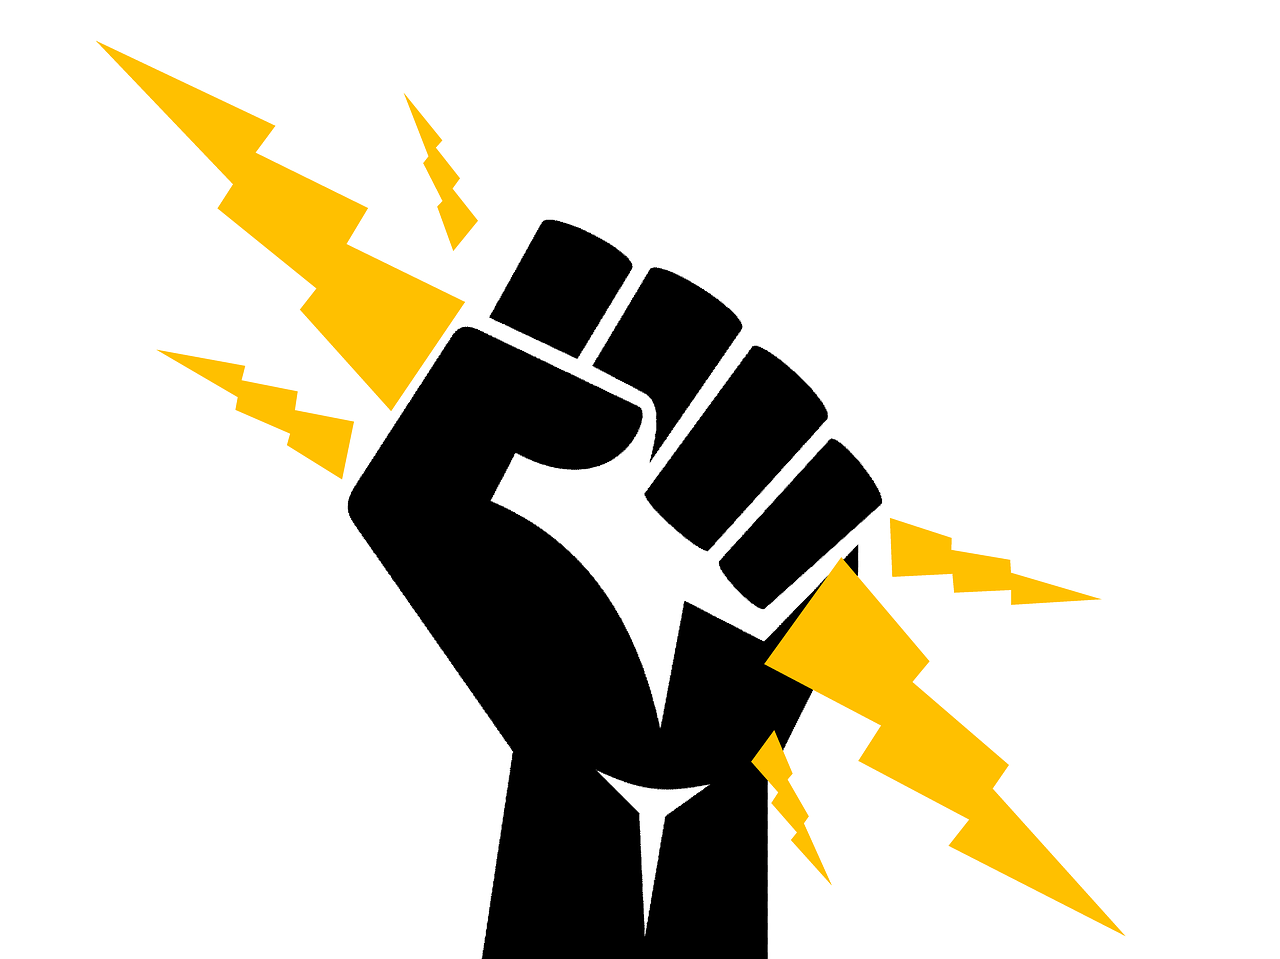 electrician, fist, power